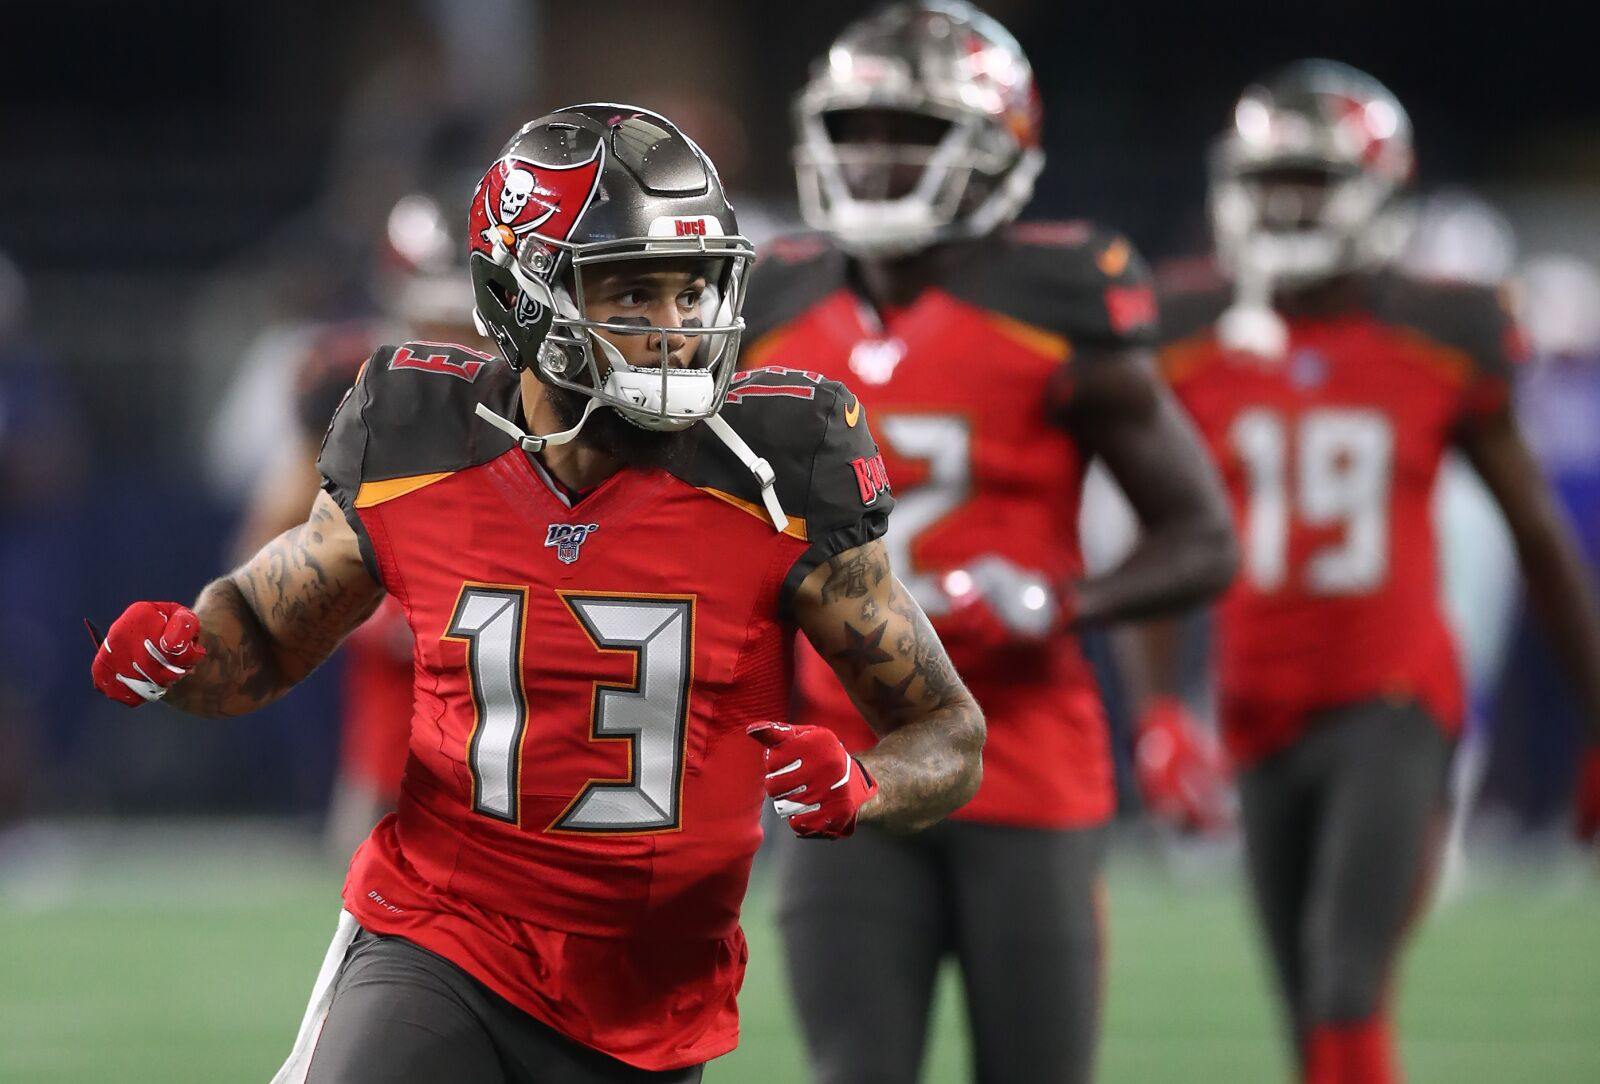 Mike Evans deserves better than the Buccaneers have provided